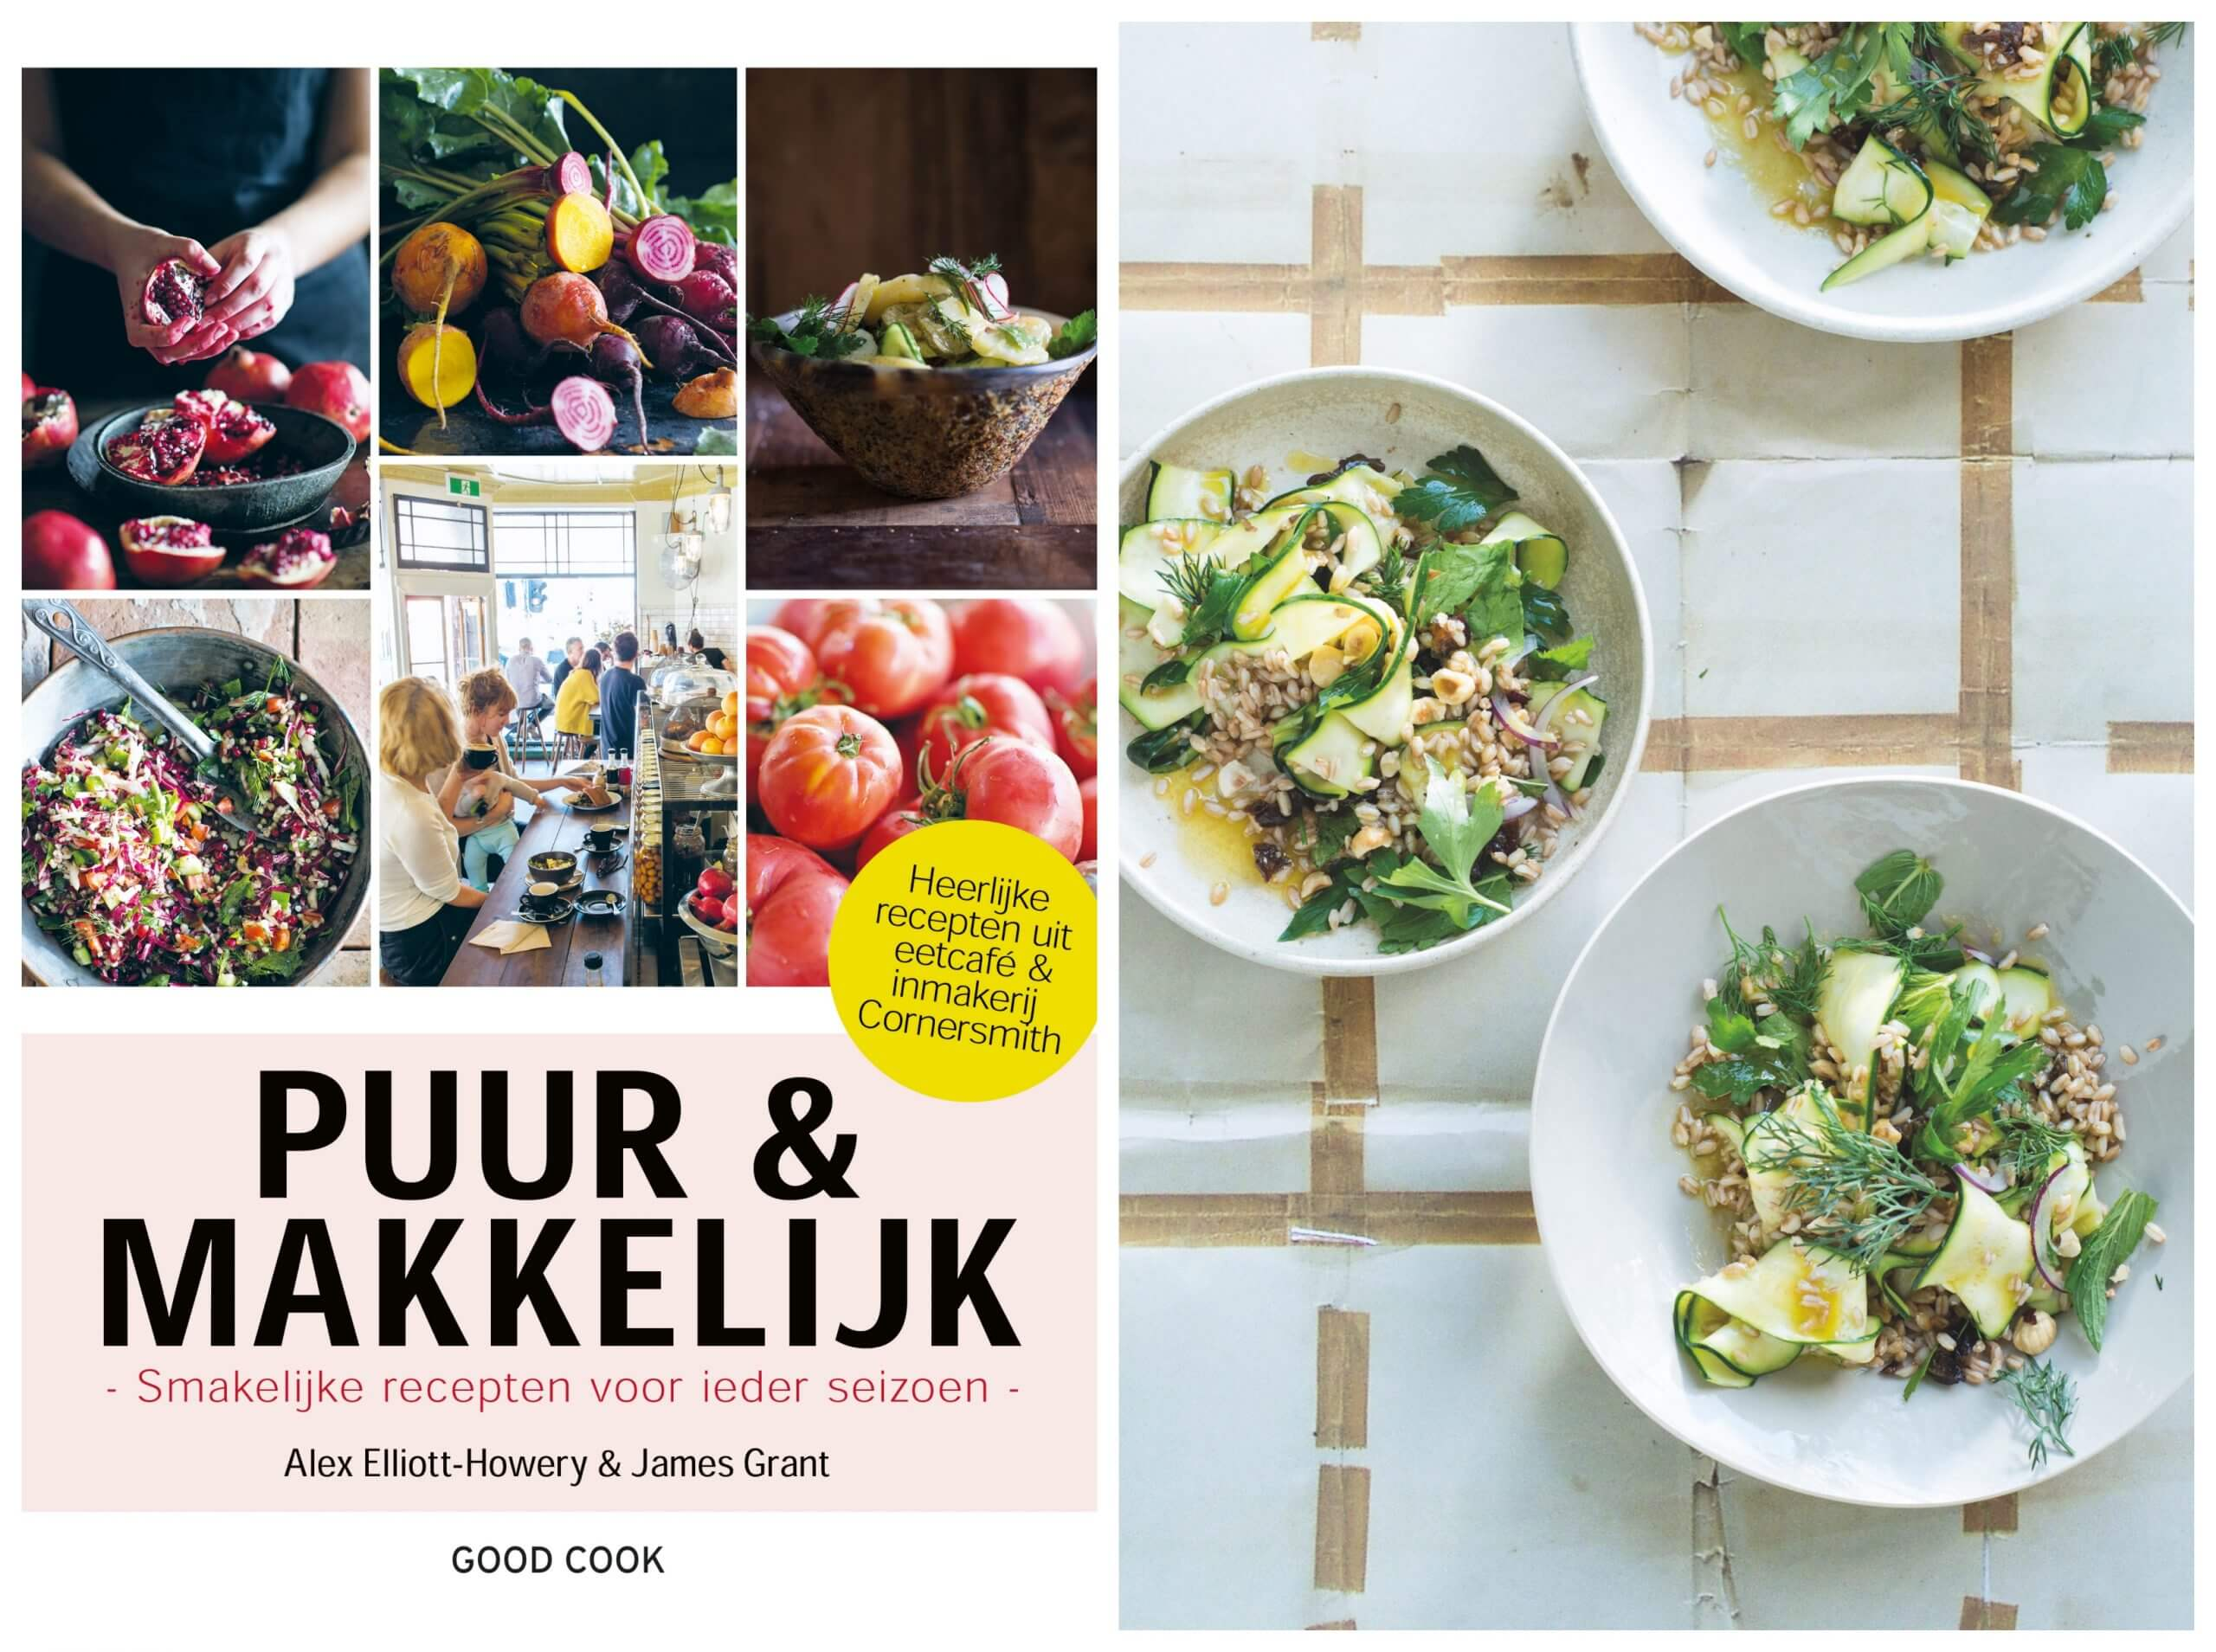 Review: Puur en makkelijk door Alex Elliott-Howery & James Grant